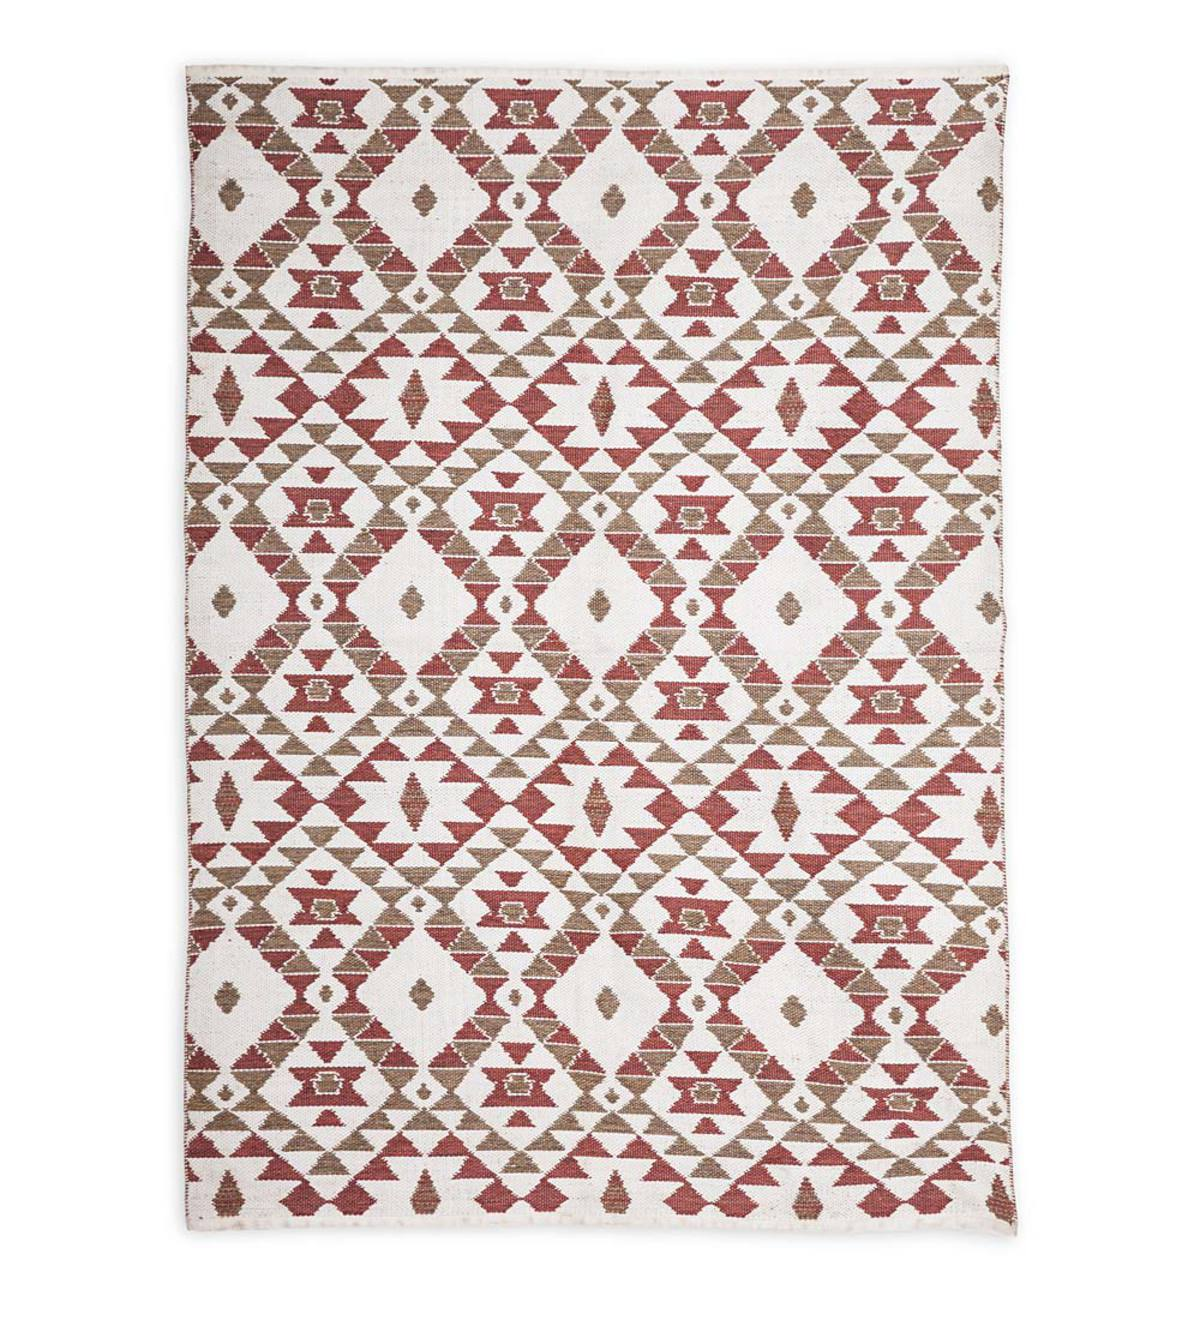 Reversible Indoor/Outdoor Diamond-Pattern Rug, 8'x10'